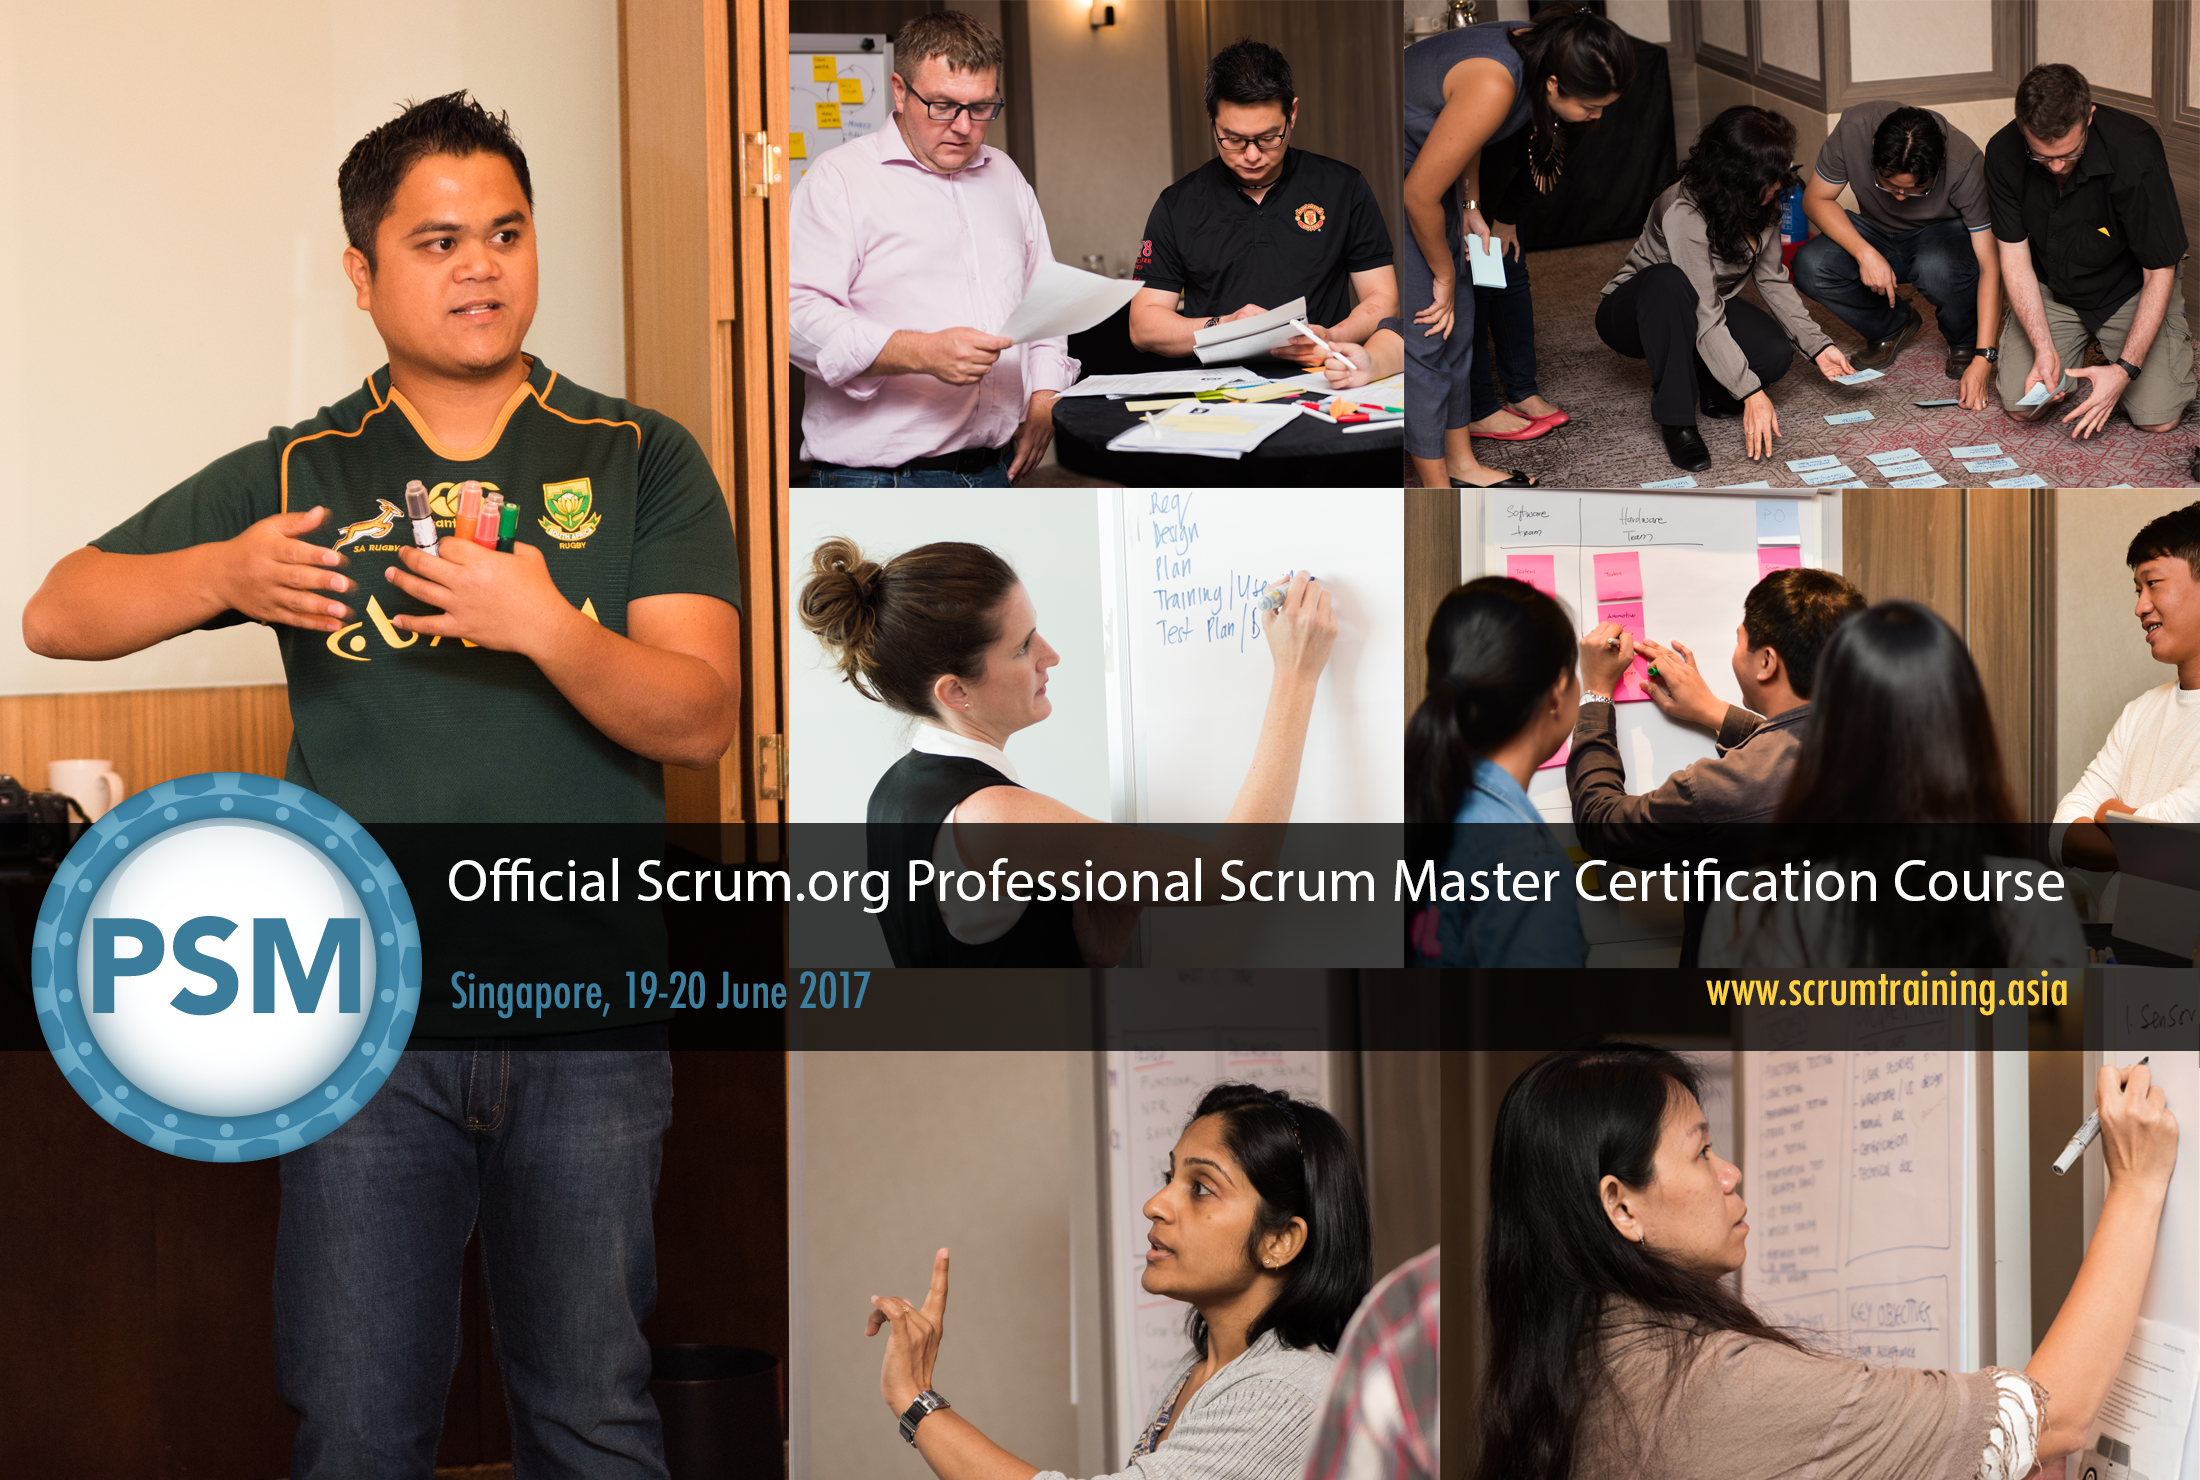 Professional Scrum Master Certification Course Singapore